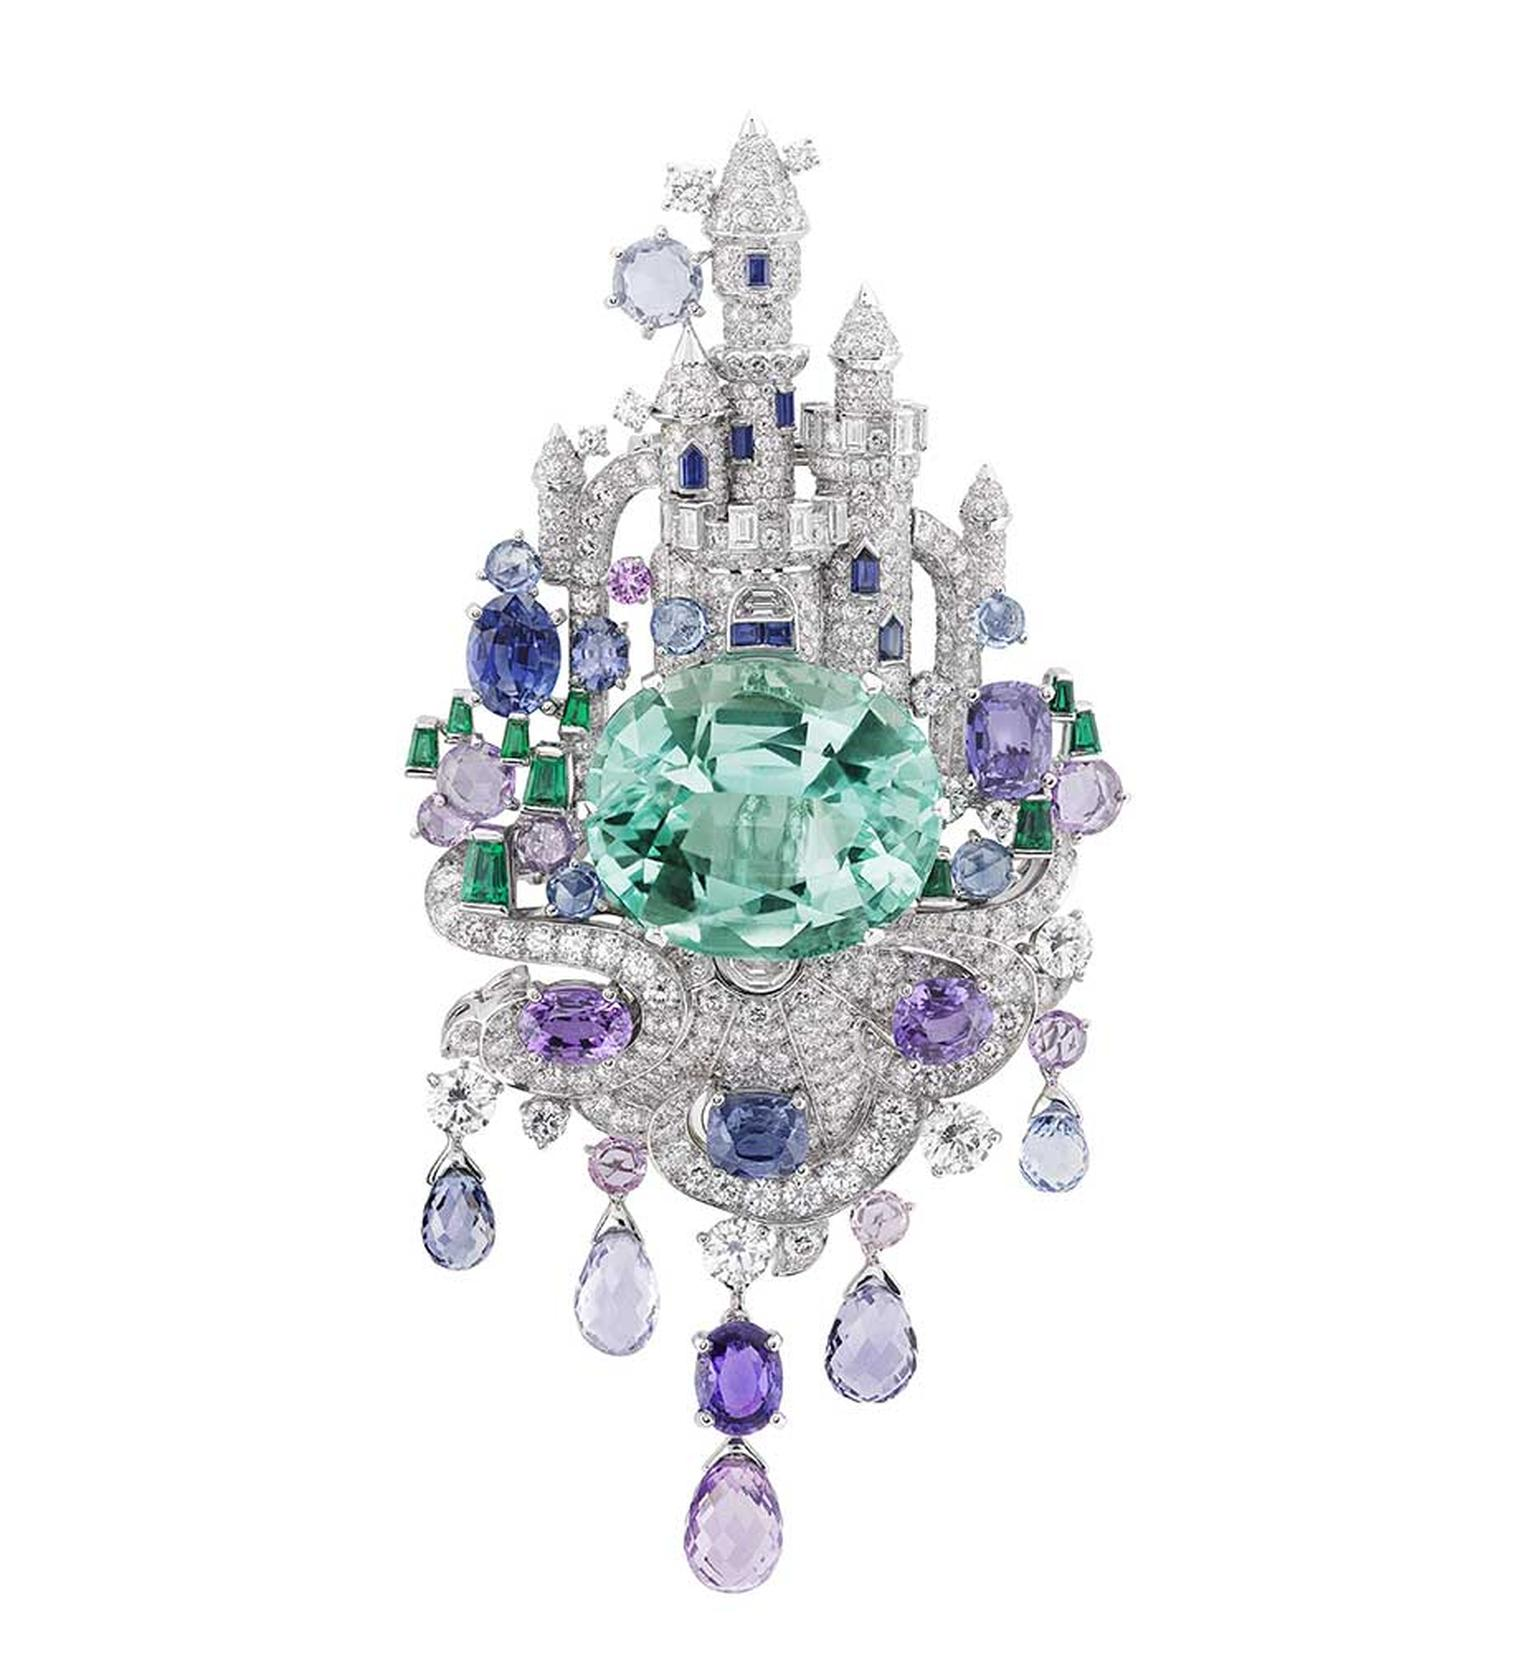 Van Cleef & Arpels Peau d'Âne collection white gold Enchanted Castle brooch featuring multiple cut diamonds, emeralds, sapphires and briolettes surrounding a 39ct oval cut emerald.